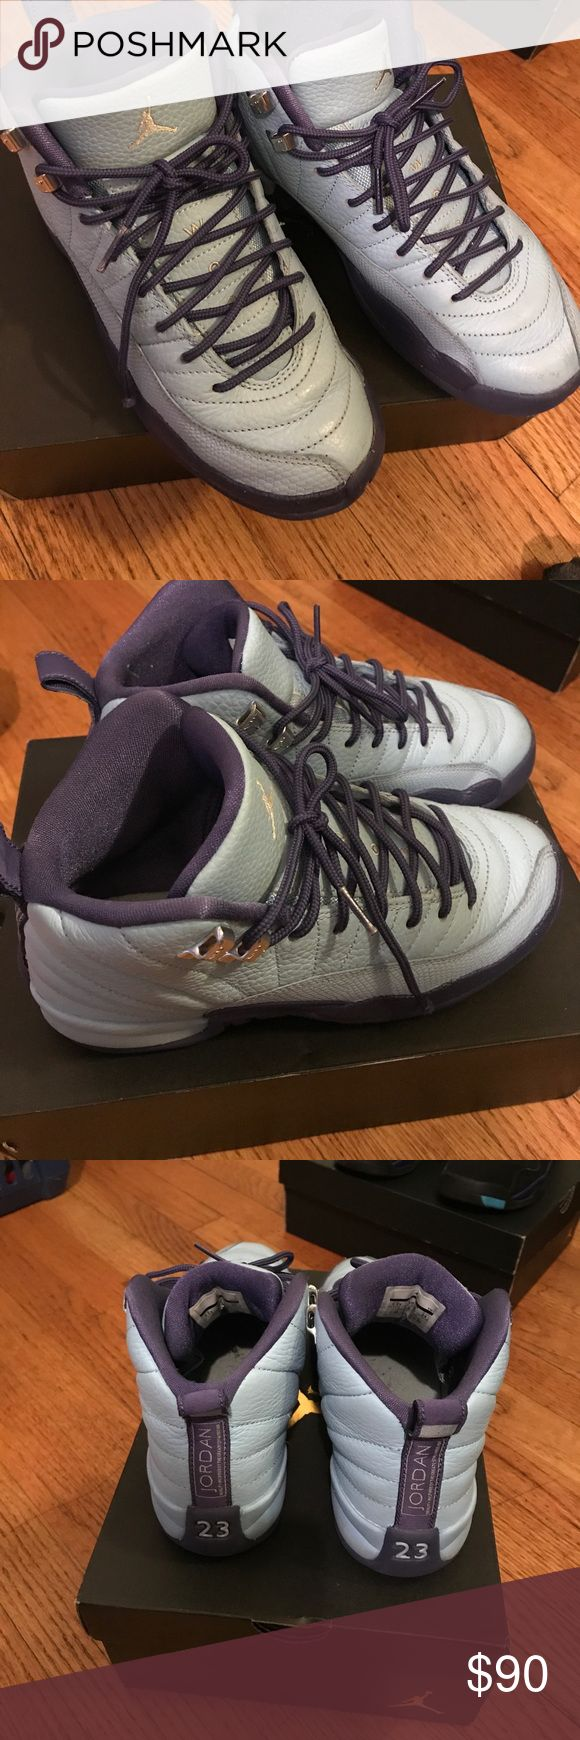 Jordan 12 Hornets Kids 5.5 Gently worn Jordan 12 Blue & Purple. Size 5.5 kids Jordan Shoes Sneakers